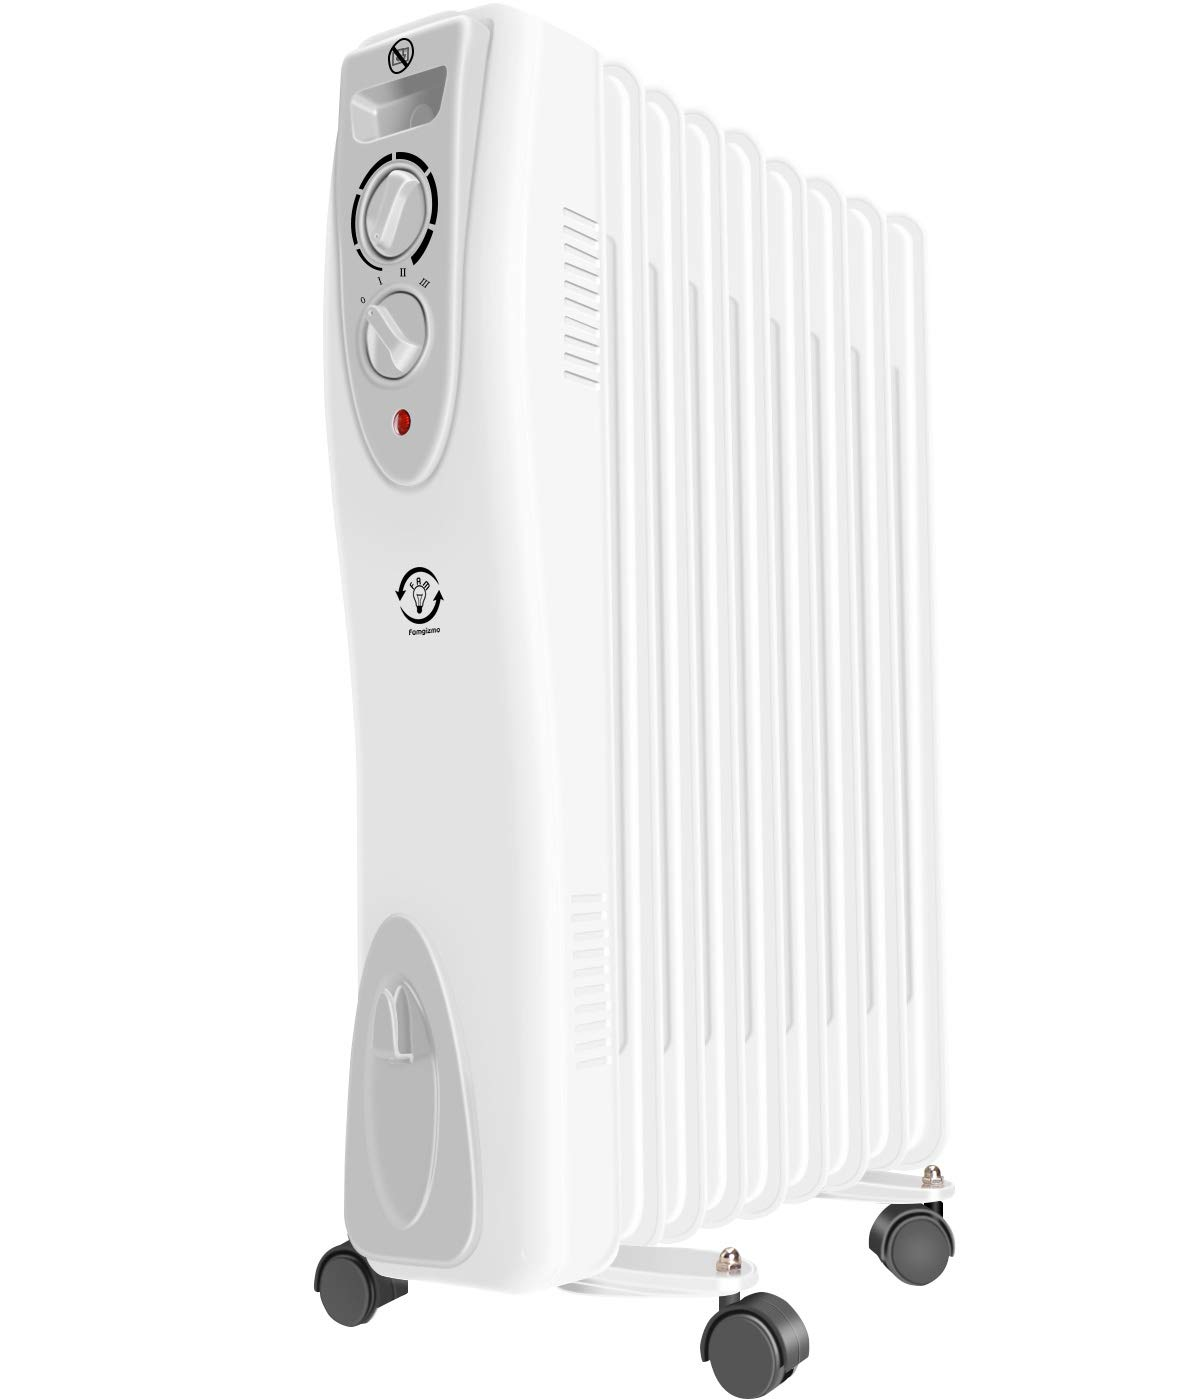 Black Daewoo 11 Fin 2500W Portable Oil Filled Radiator Heater with Thermostat /& Wheels